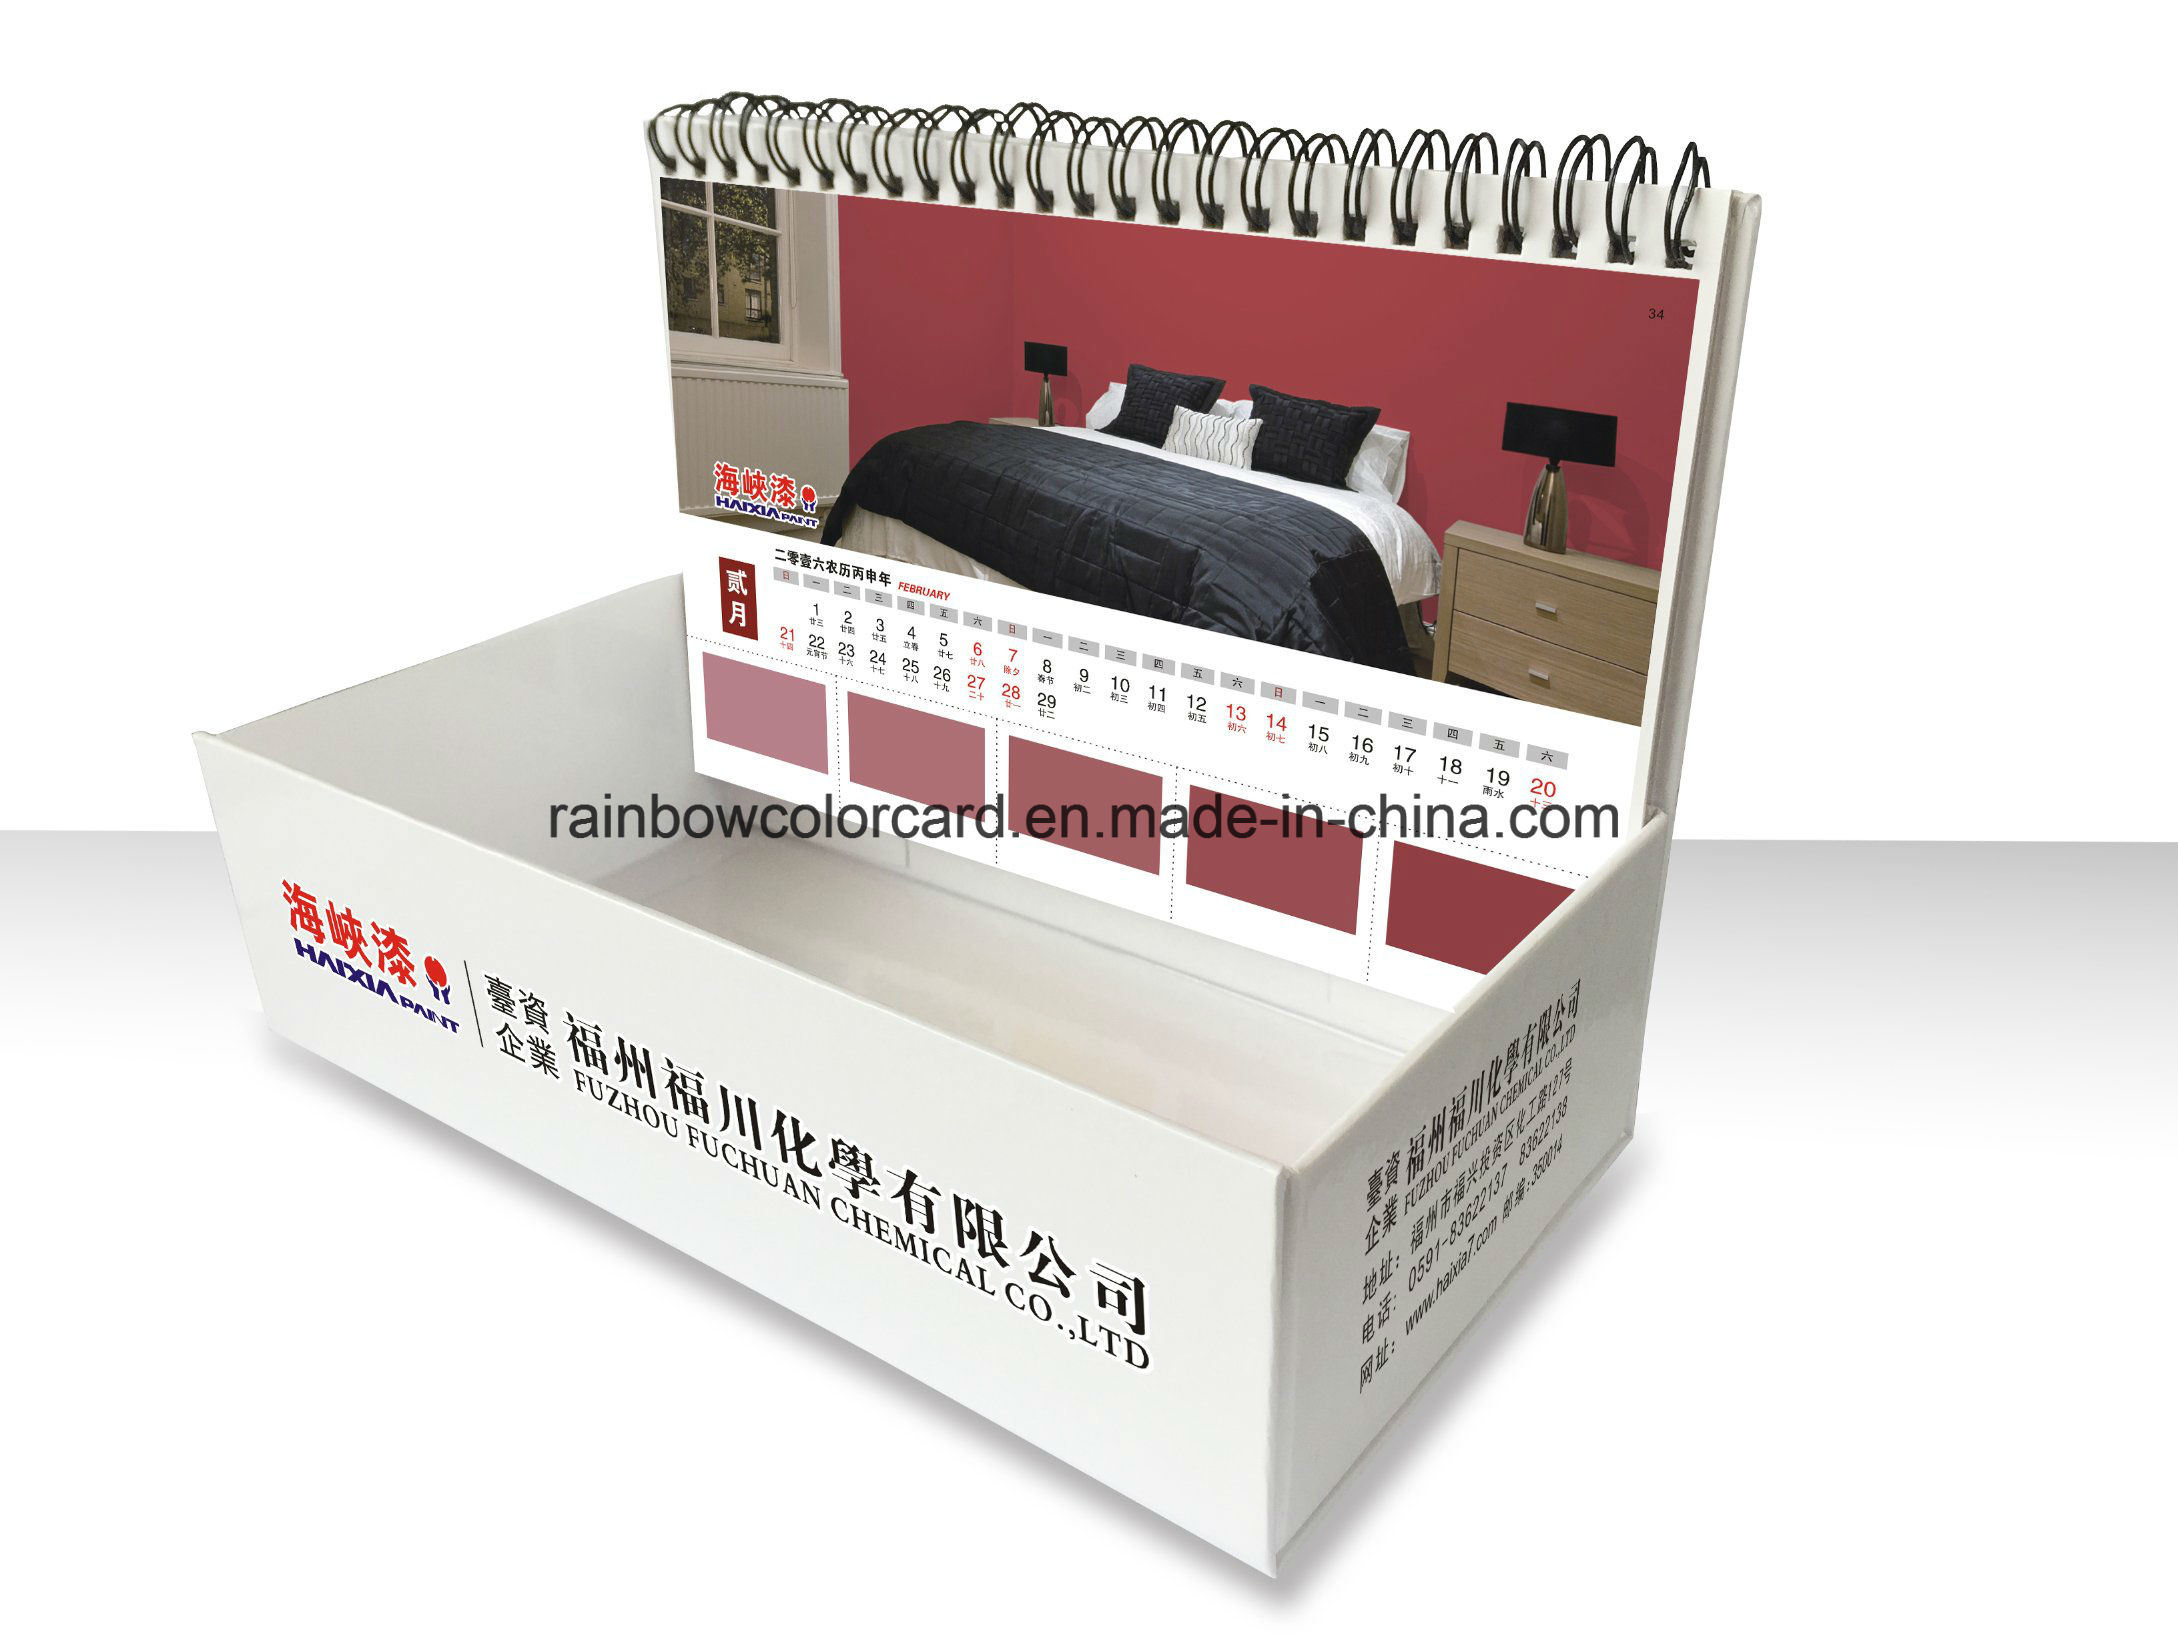 Promotional Gift of Painting Color Card Storage Box